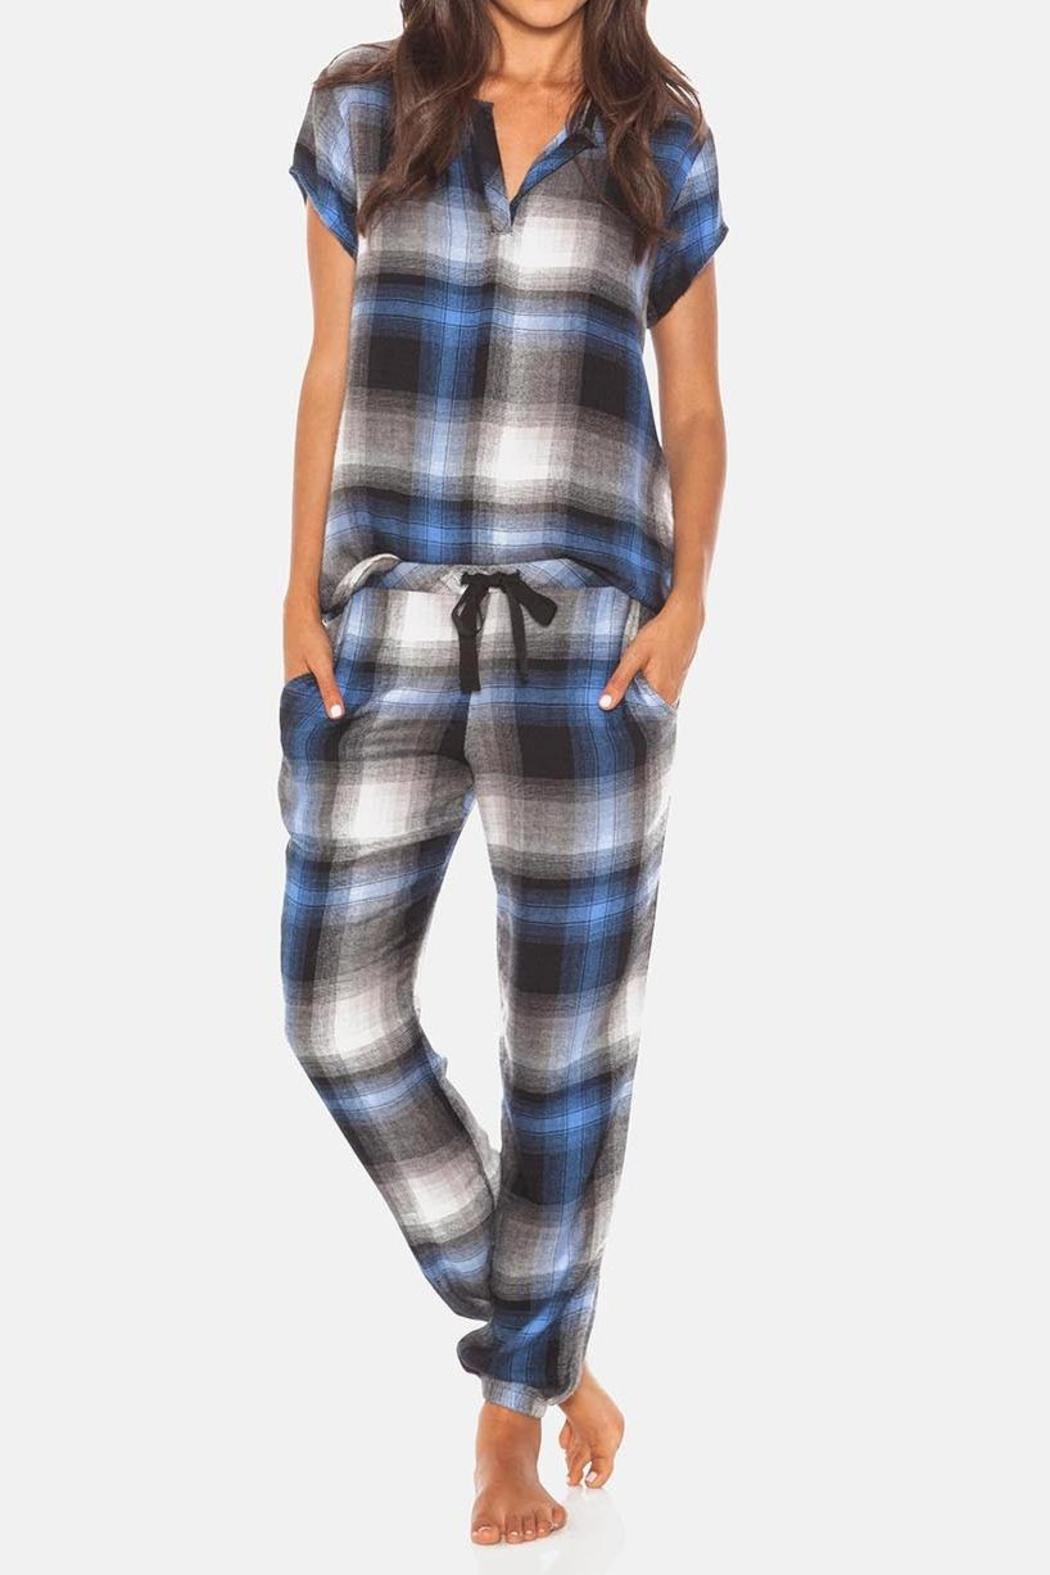 a98bc9002251 Bella Dahl Pajama Set from Wicker Park by Mulberry   Me — Shoptiques